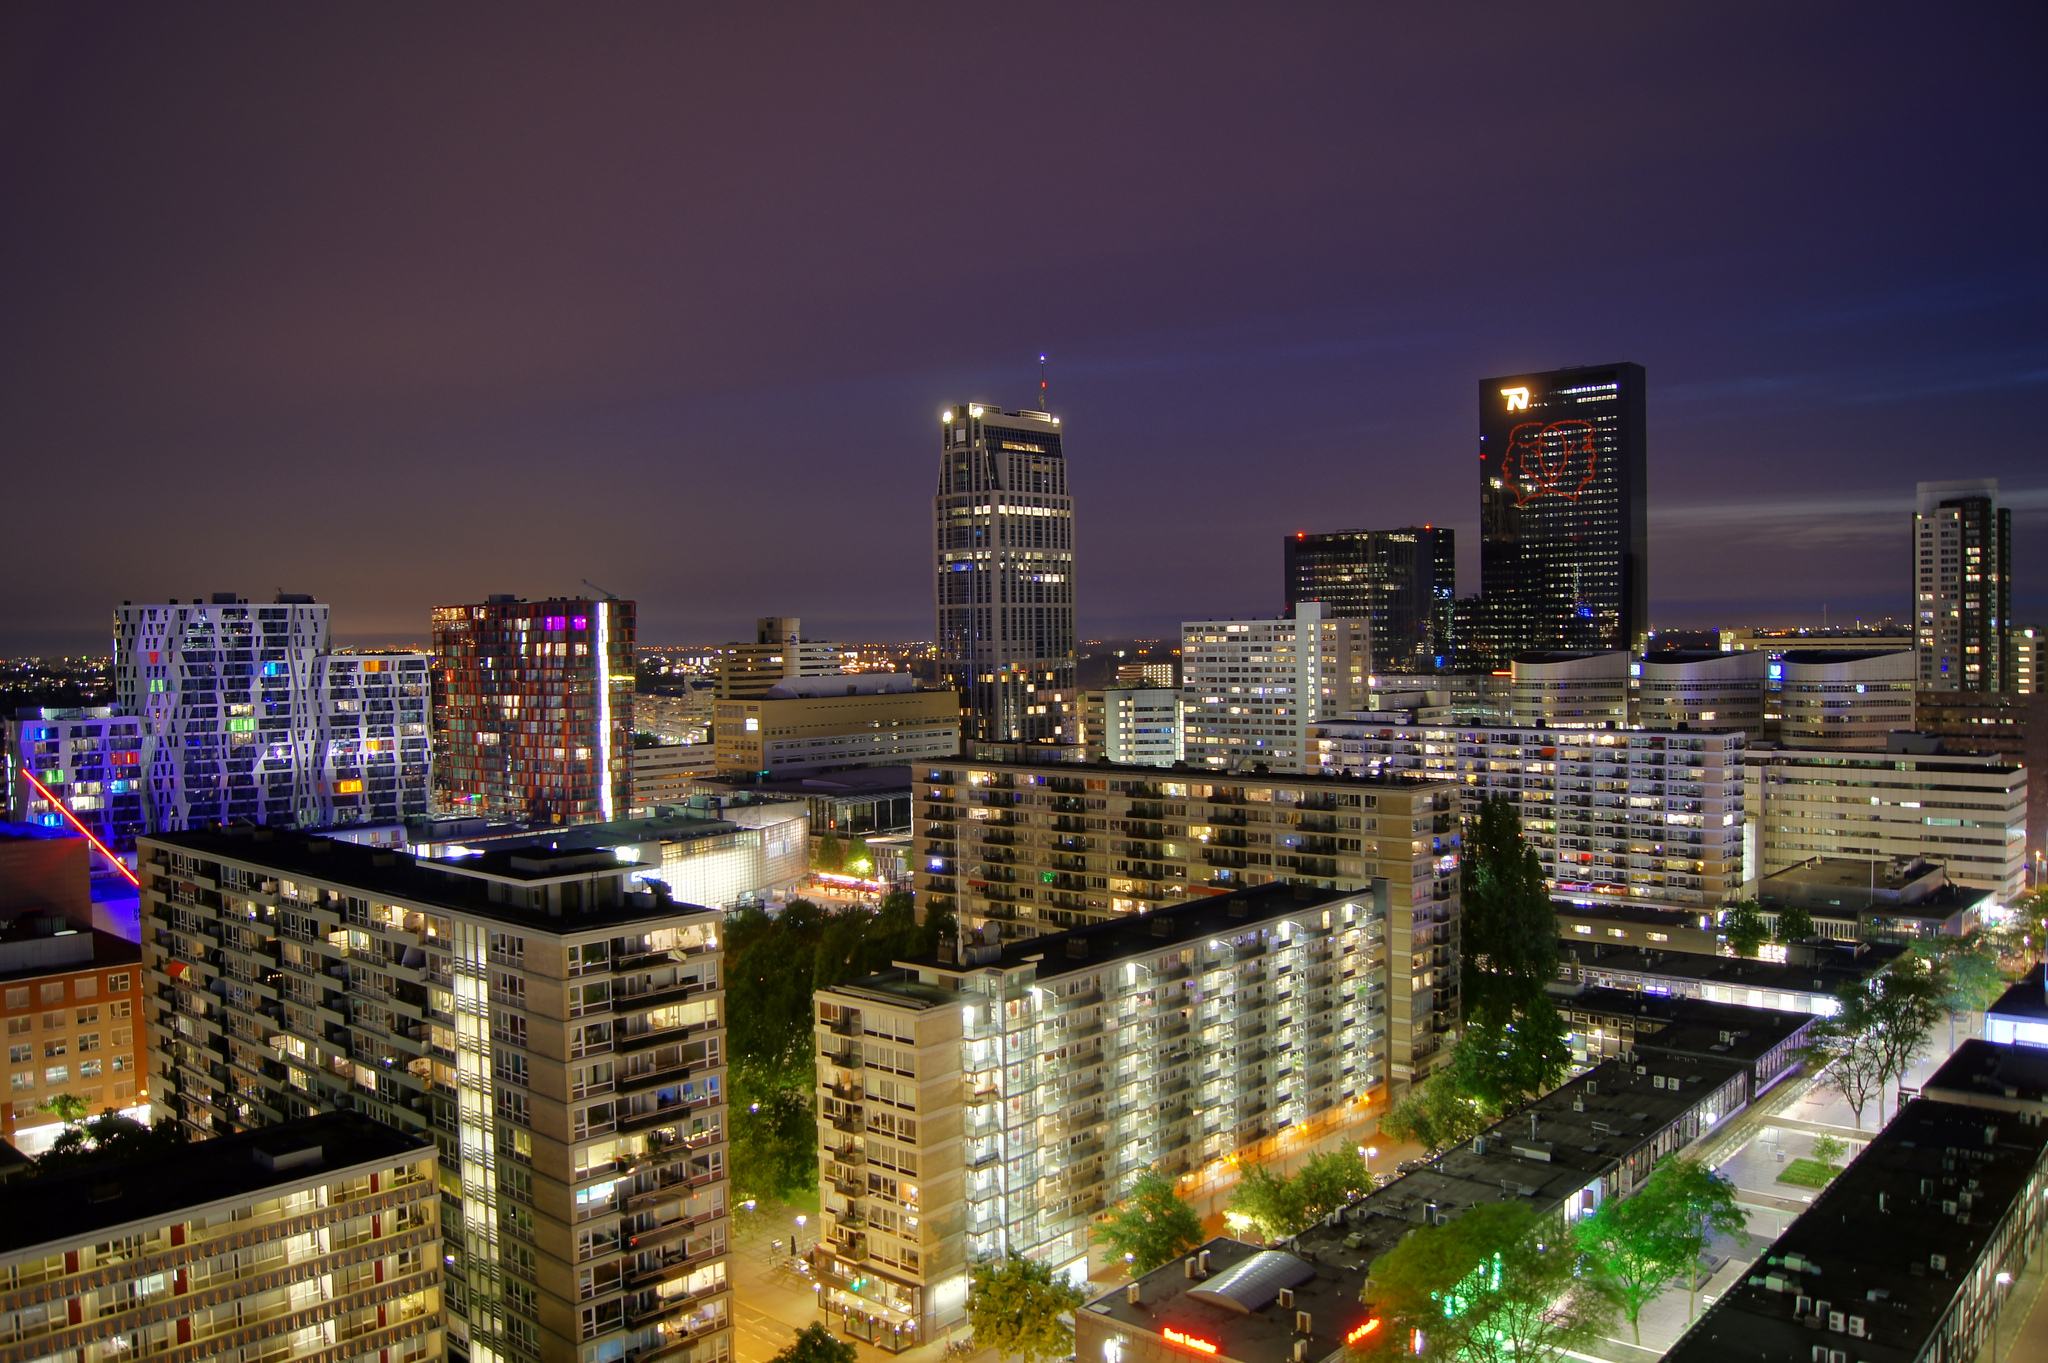 Rotterdam centrum cityscape by night